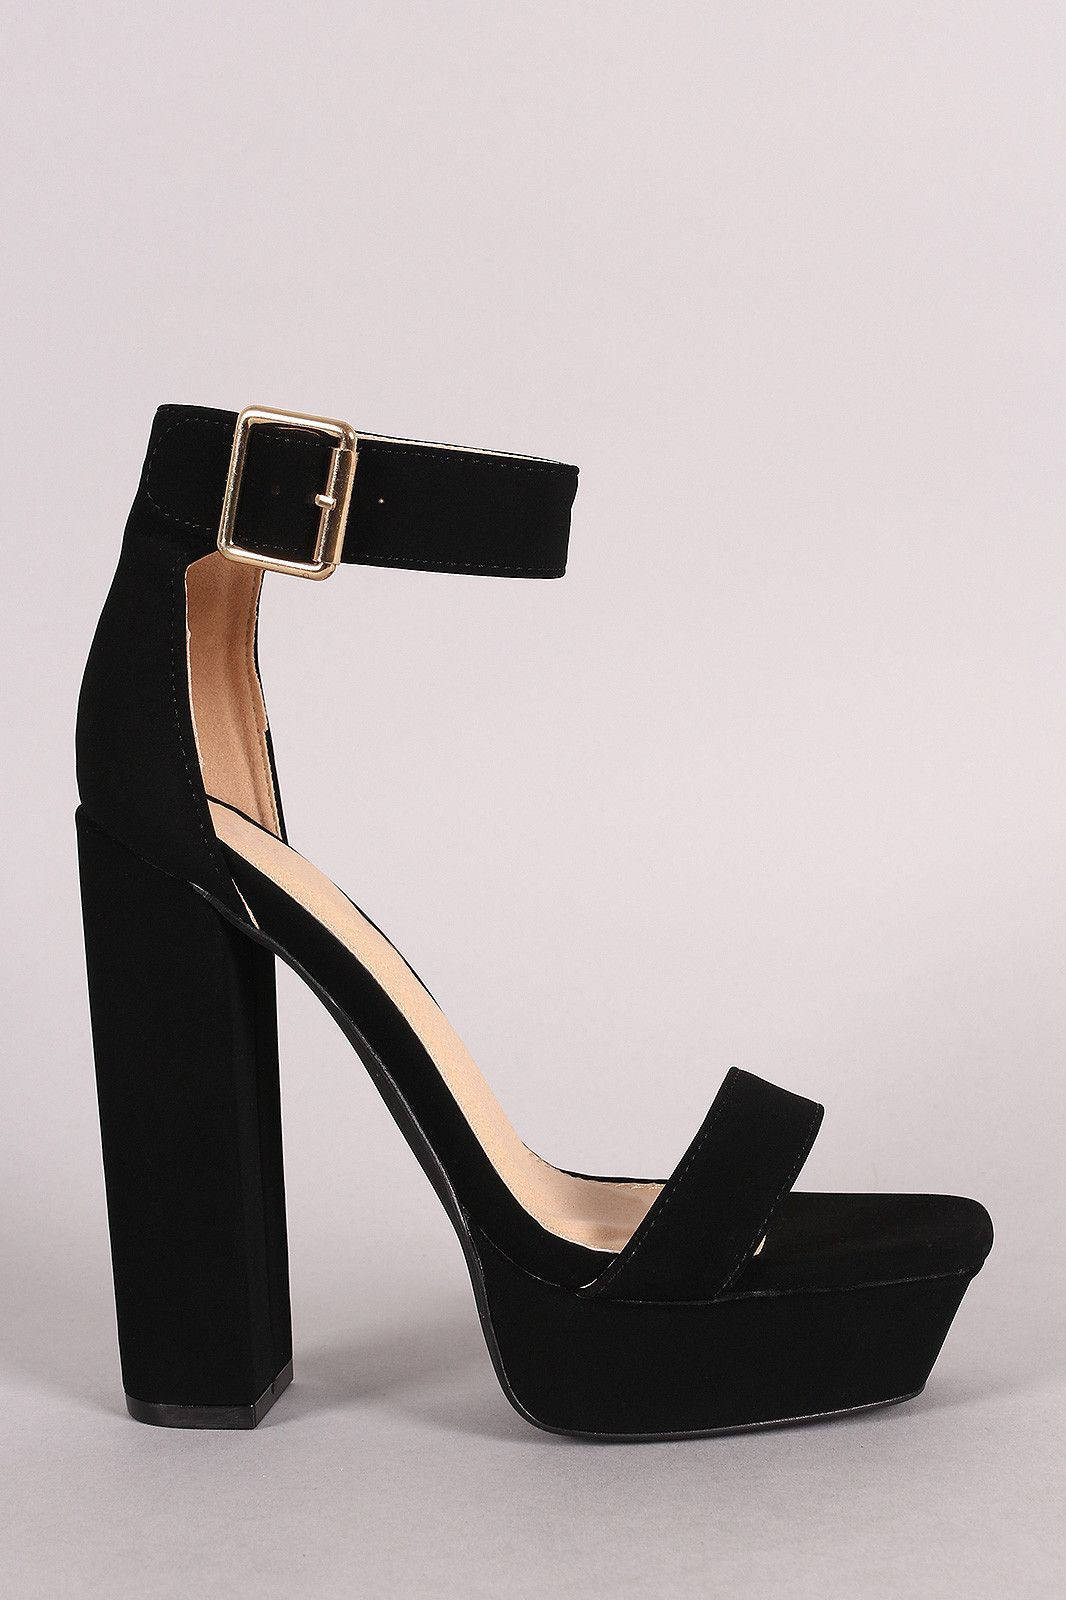 7d75d63c549d Liliana Nubuck Buckled Ankle Strap Chunky Platform Heel. Description This trendy  heel features a square open toe ...